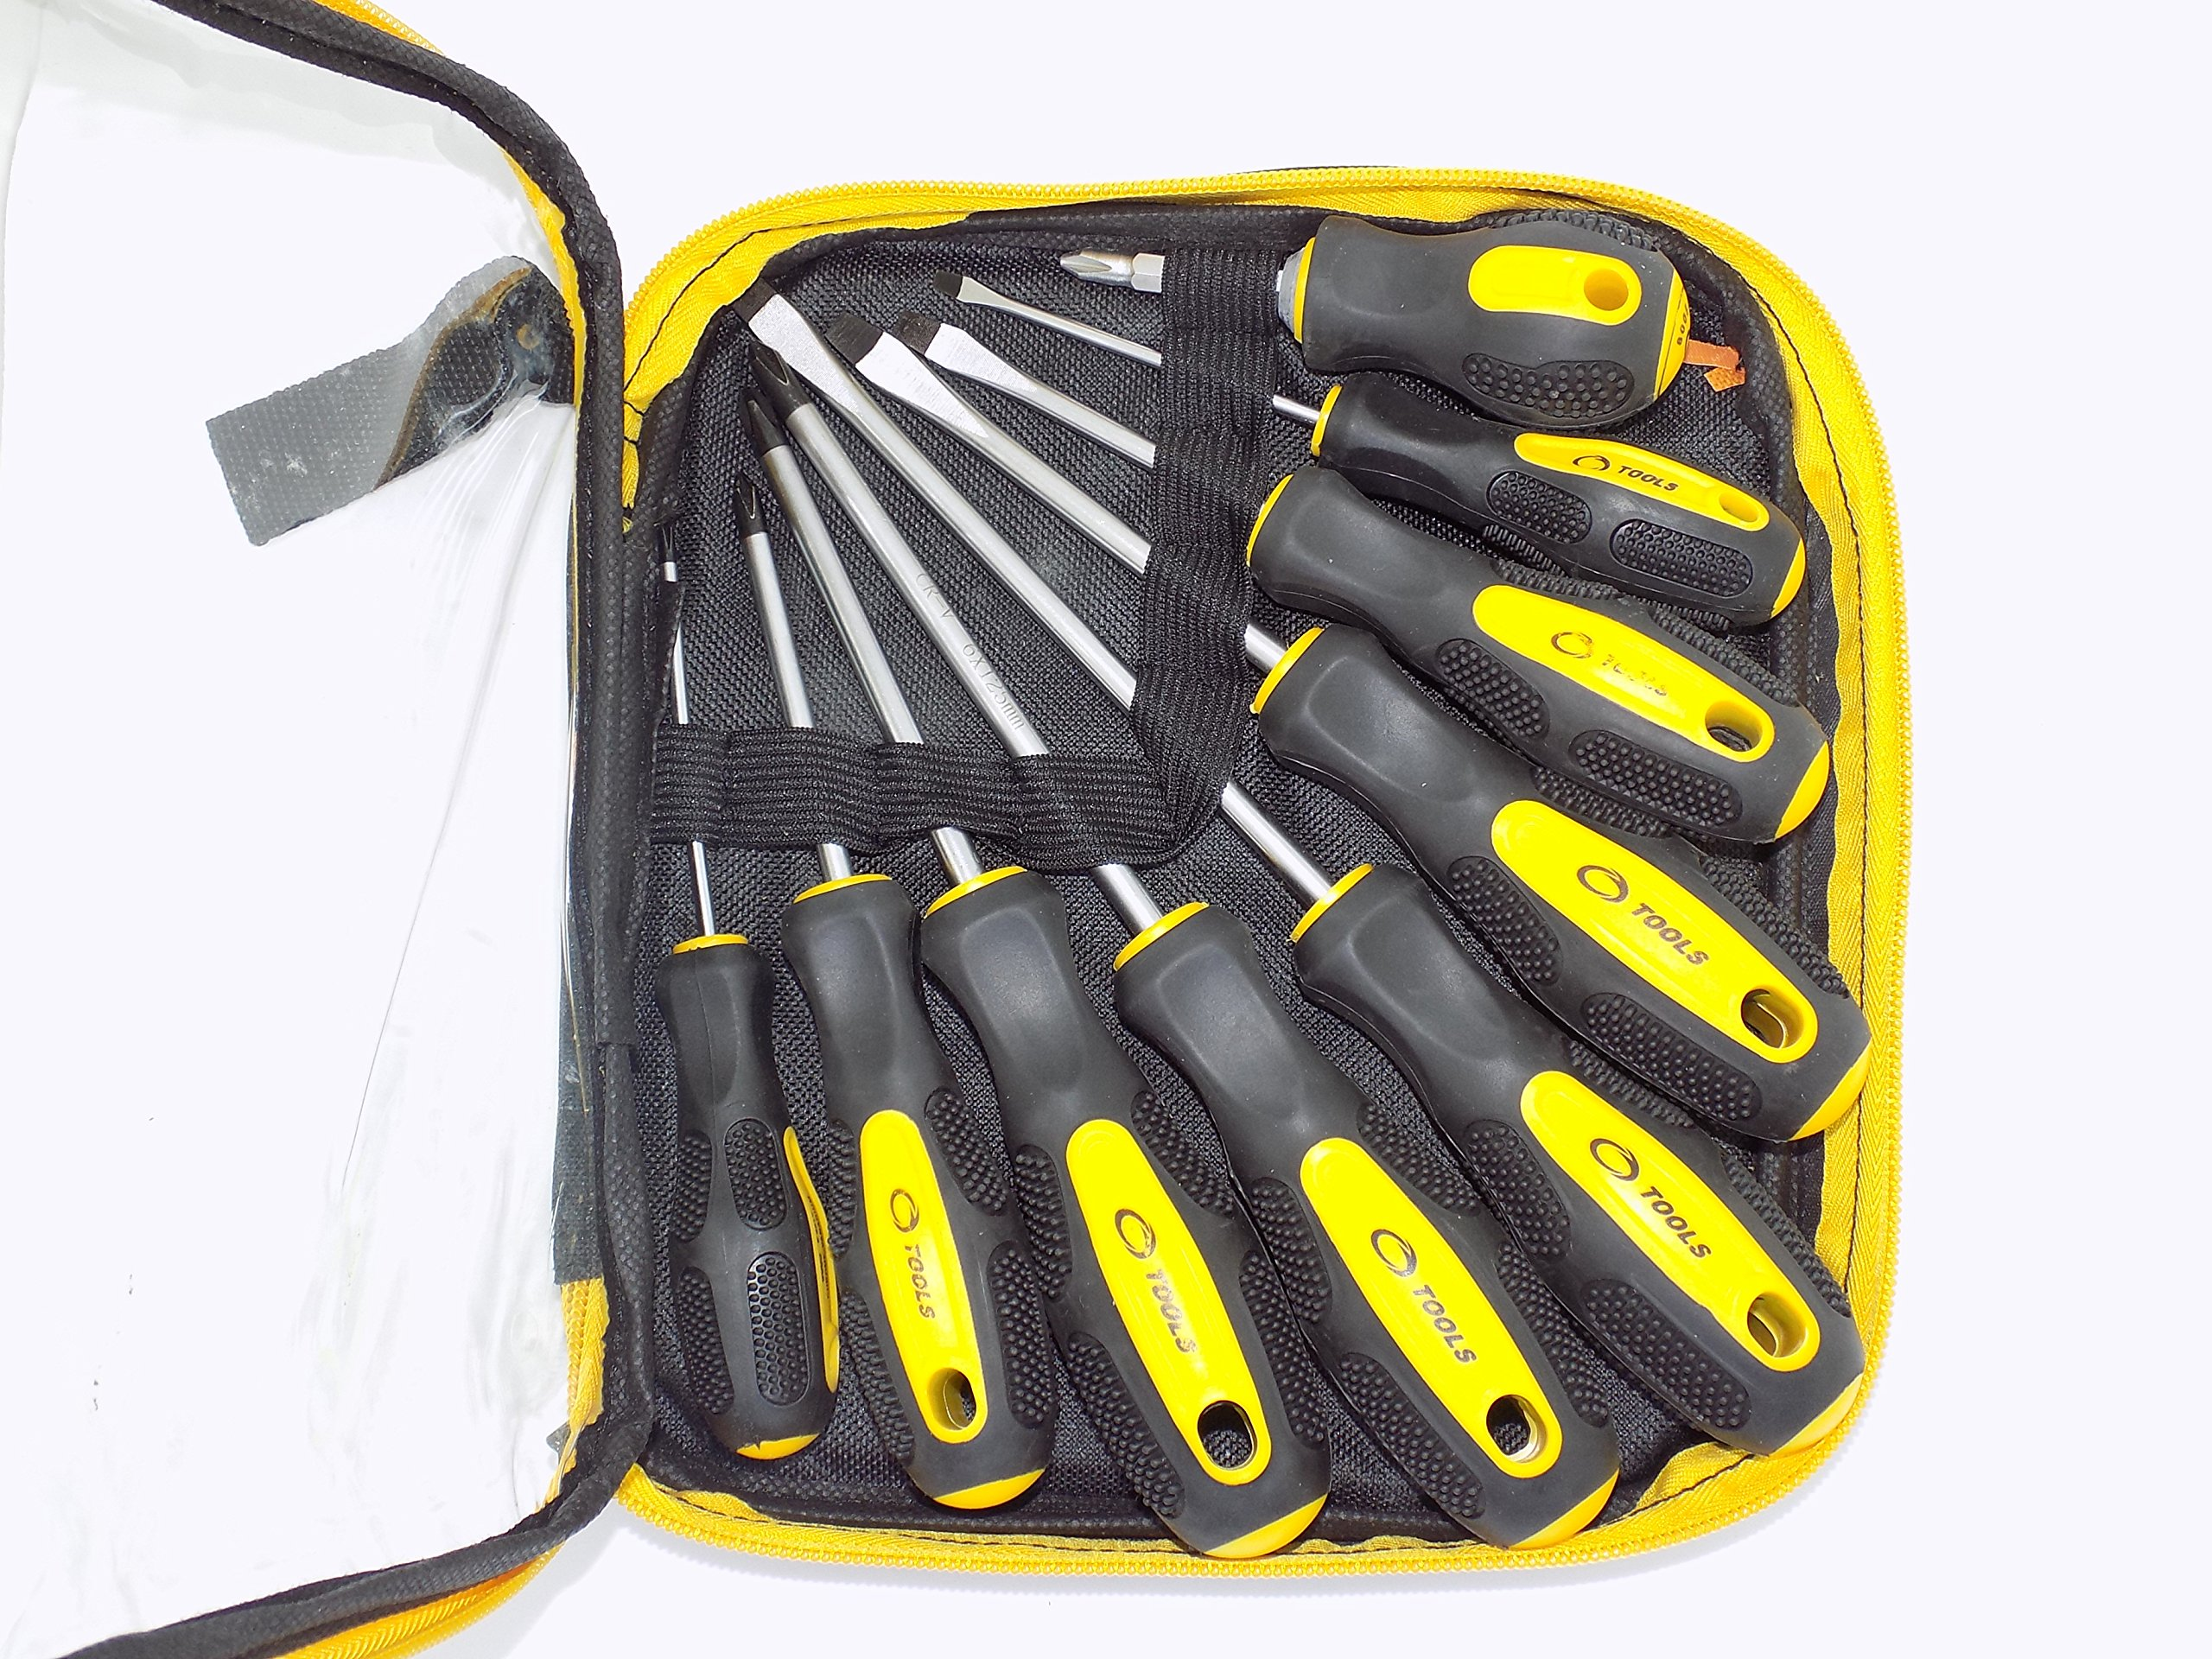 Screwdriver,Bolt driver,Tools Screwdriver Set, Yellow 9-Piece (9 piece is not changeable).Different specifications are suitable for almost all product installation